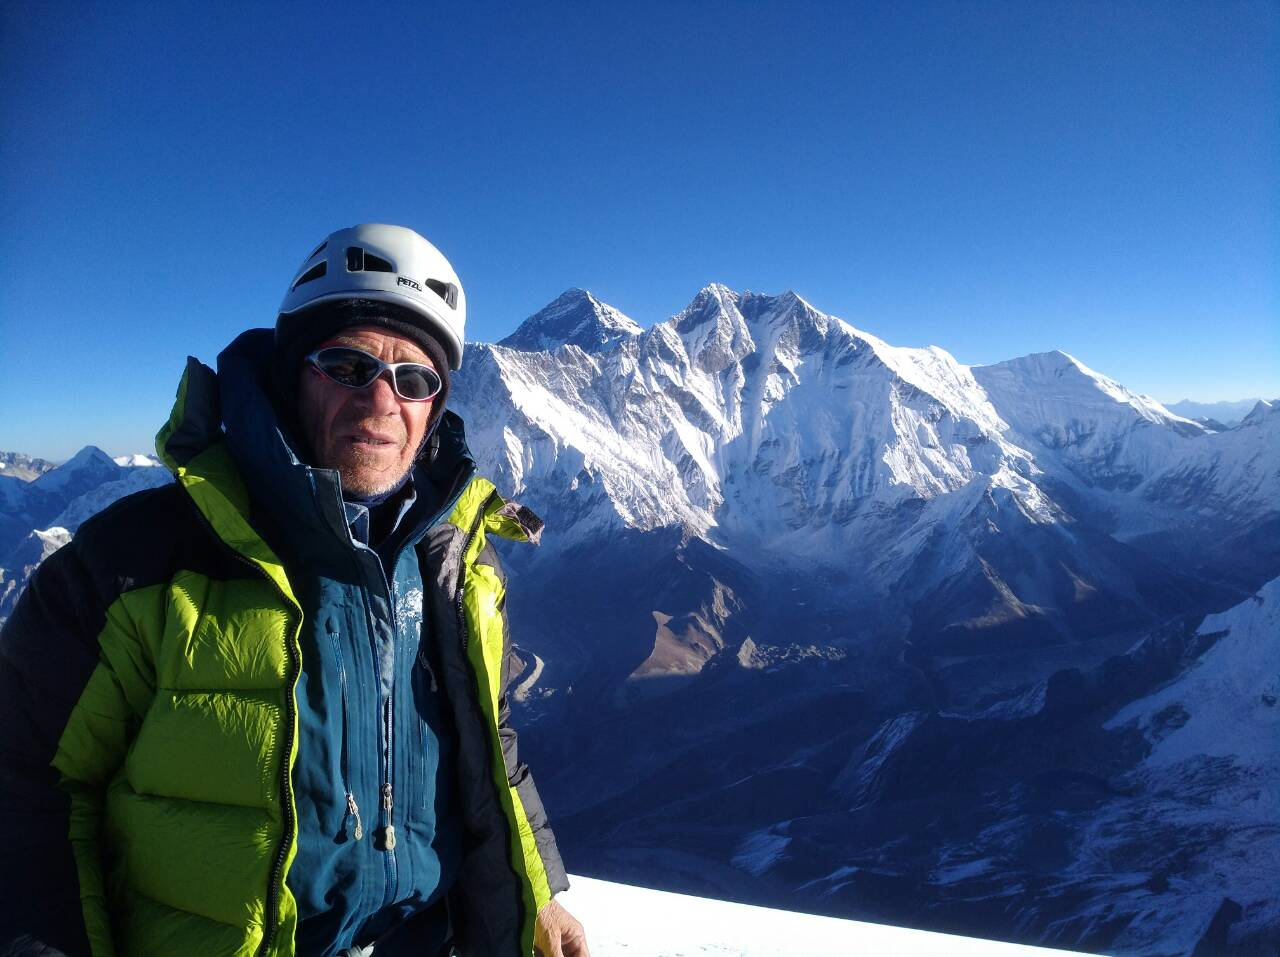 Mountain Guide on the summit of Ama Dablam 6812 m (Photo: Marjeta Breznik)